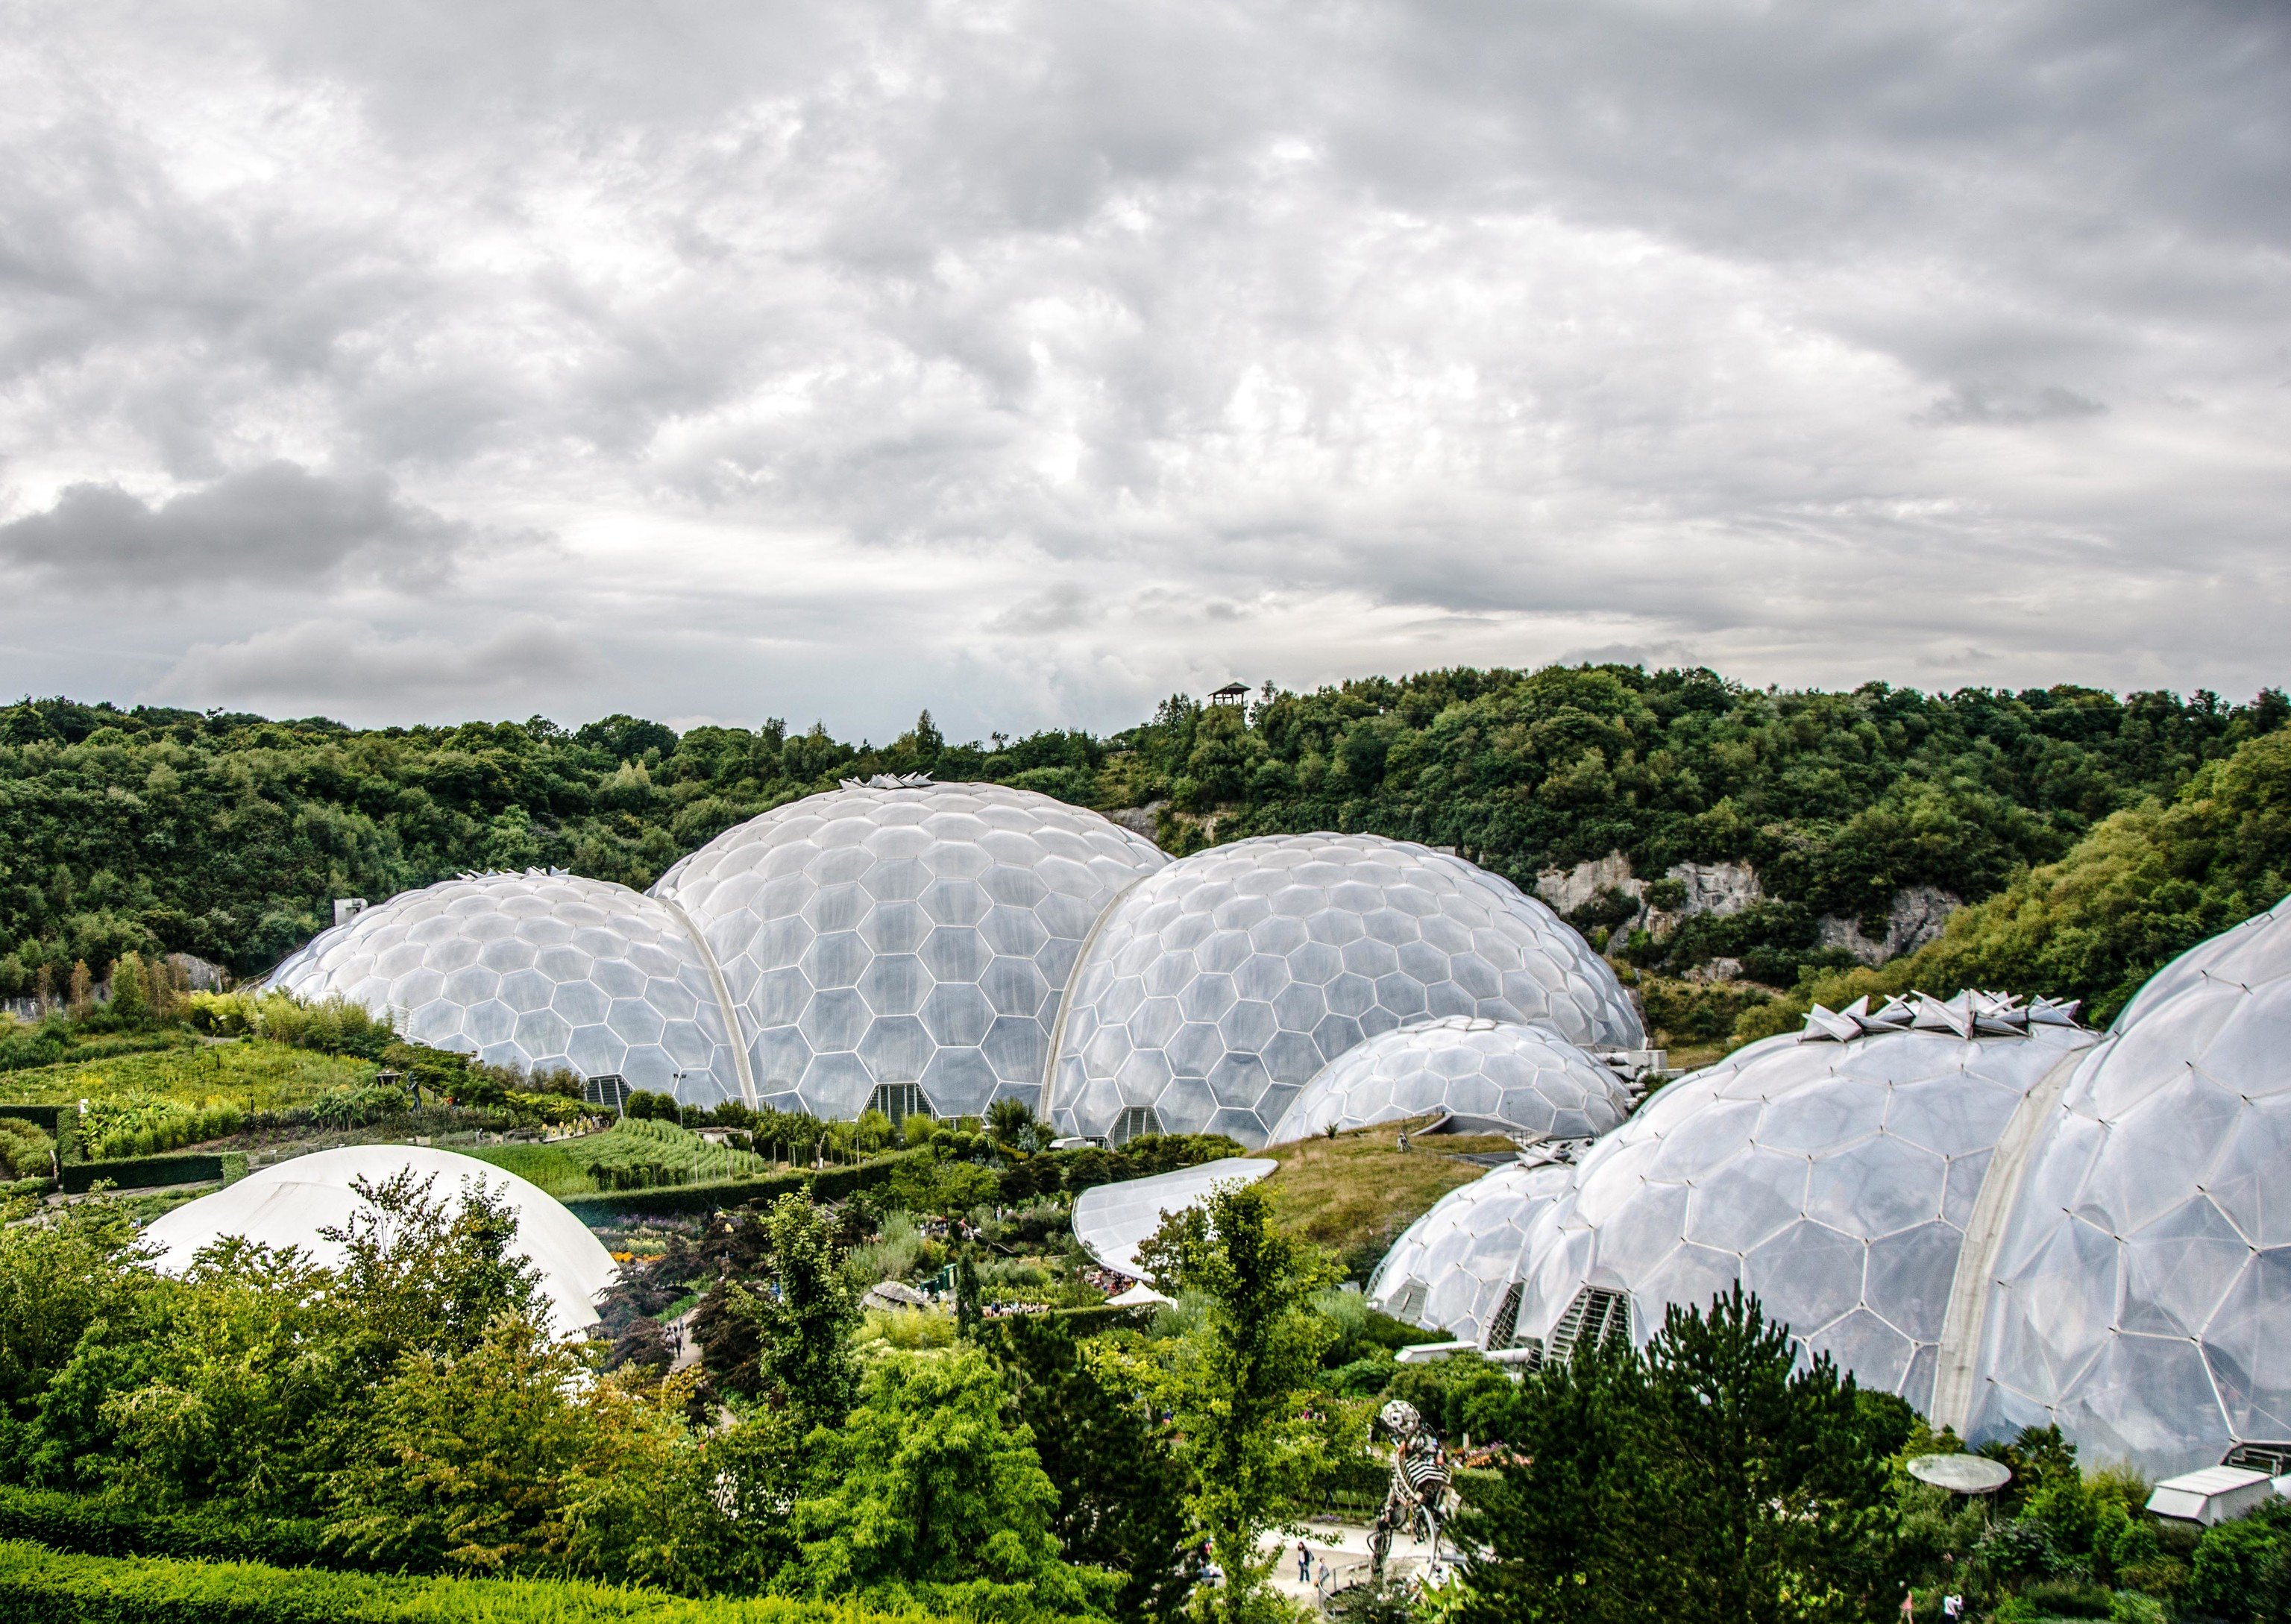 Trip Ideas building sky outdoor dome igloo Nature ecosystem daytime biome cloud tree grass landscape greenhouse plant water day